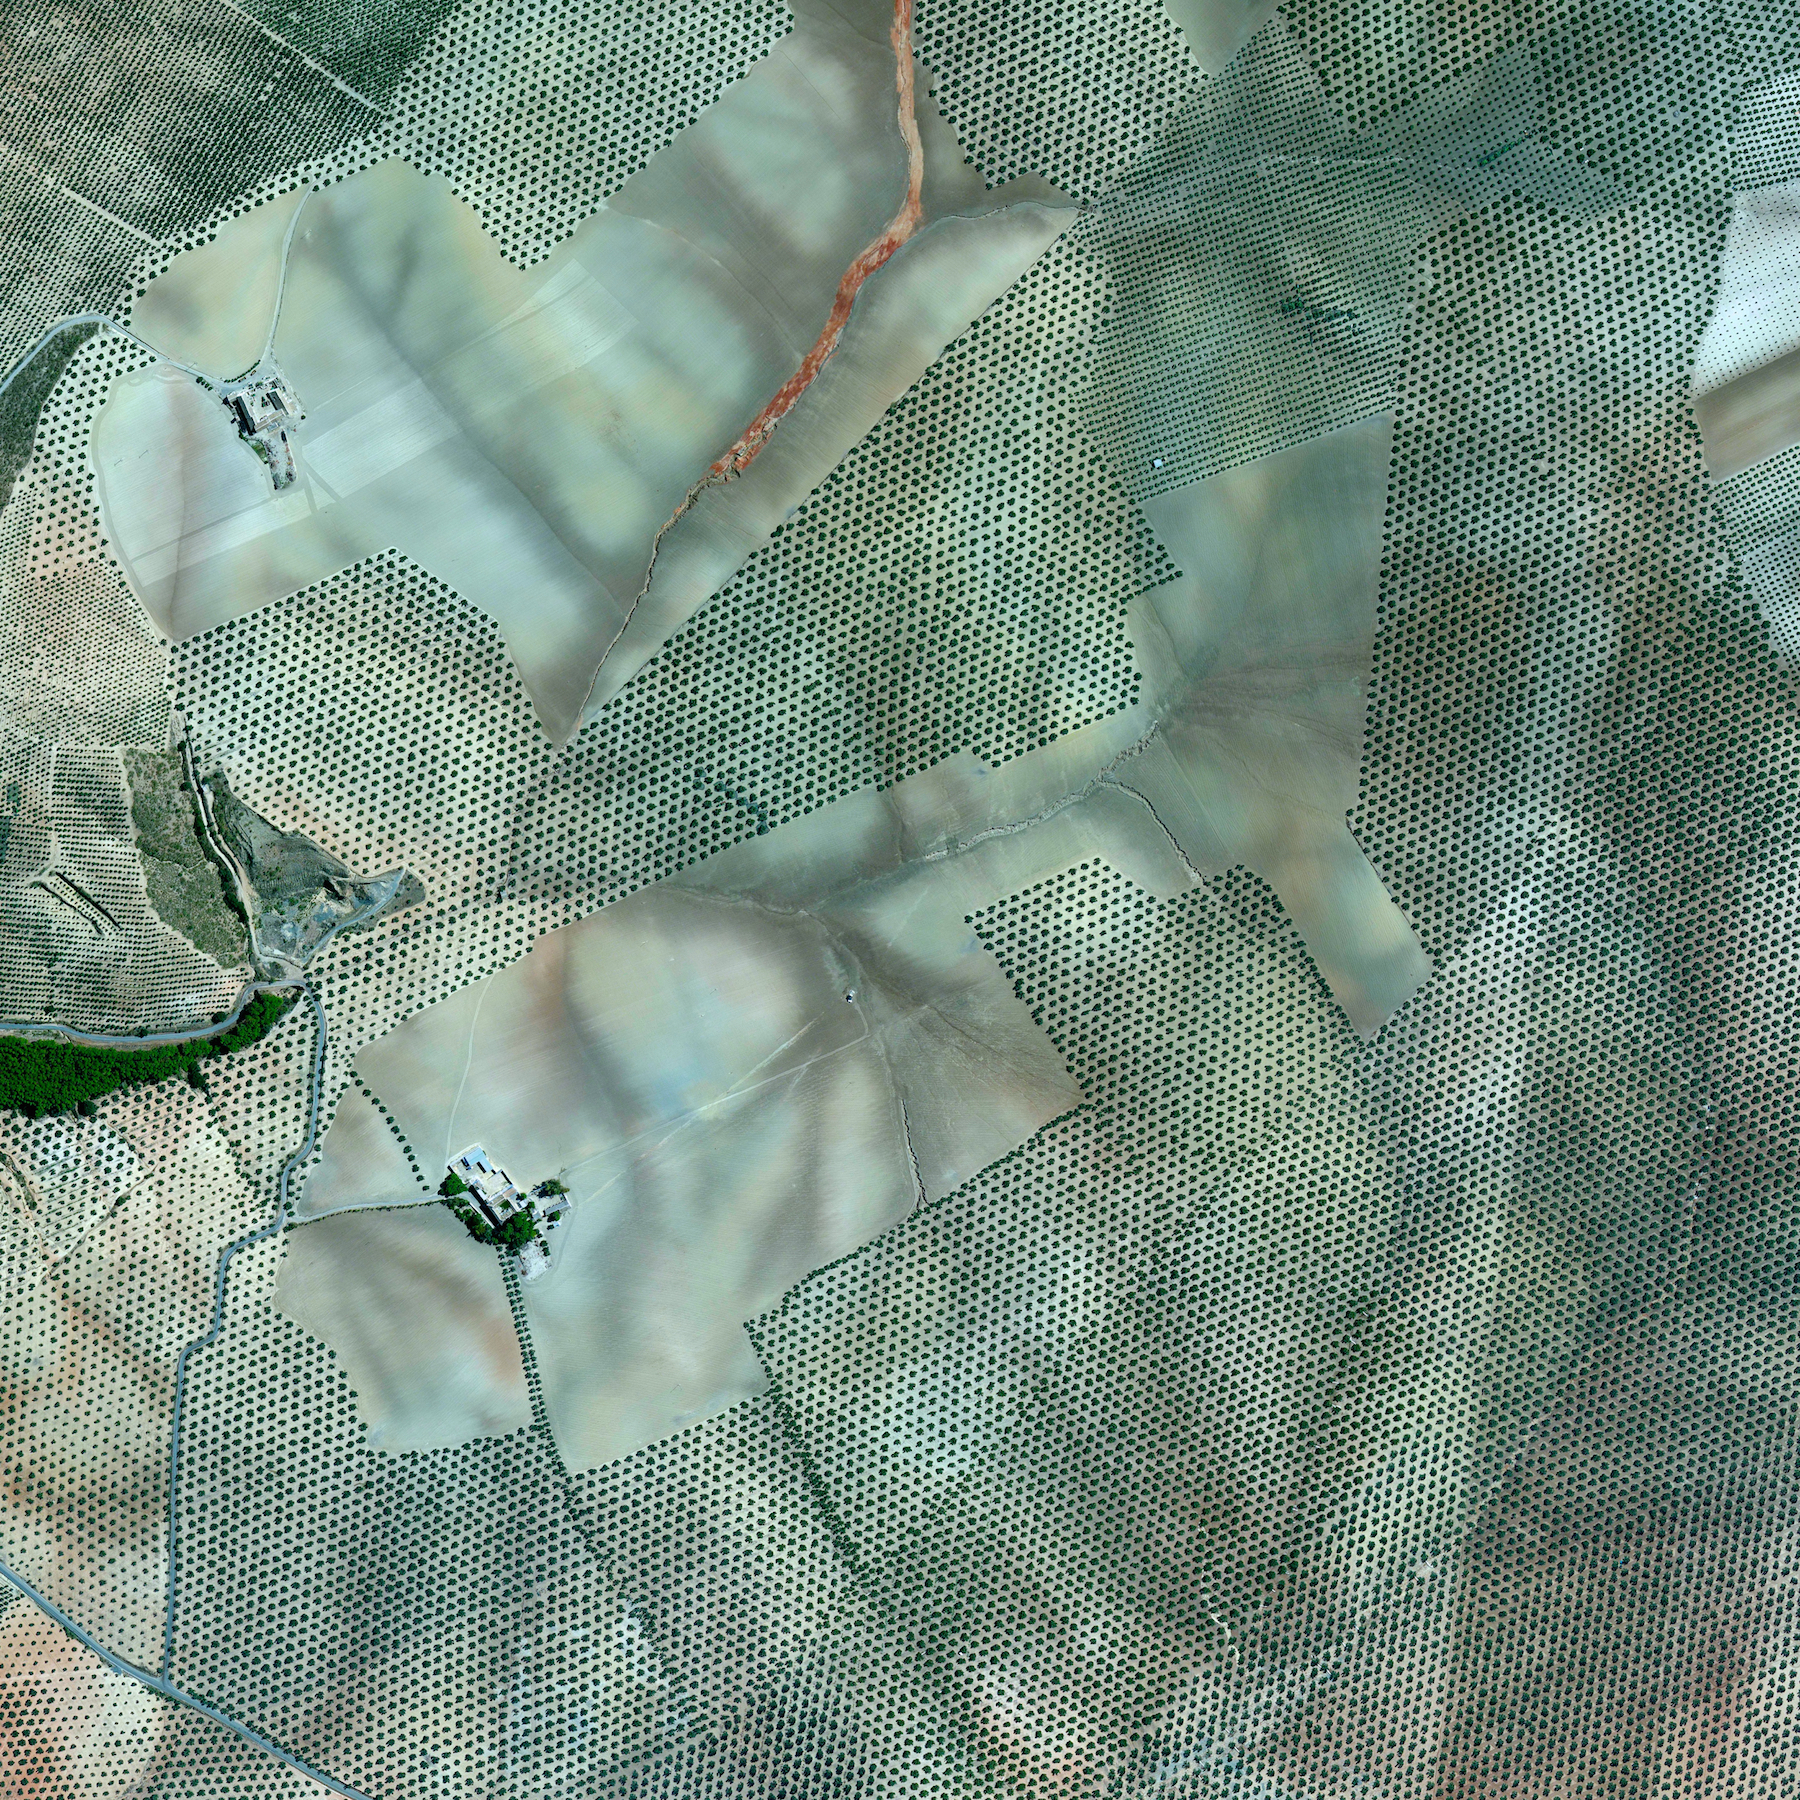 7/19/2015   Olive Tree Plantations    Córdoba, Spain   37.263212022°, -4.552271206°    Olive tree plantations covers the hills of Córdoba, Spain. Approximately 90% of all harvested olives are turned in to oil, while the 10% are eaten as table olives.